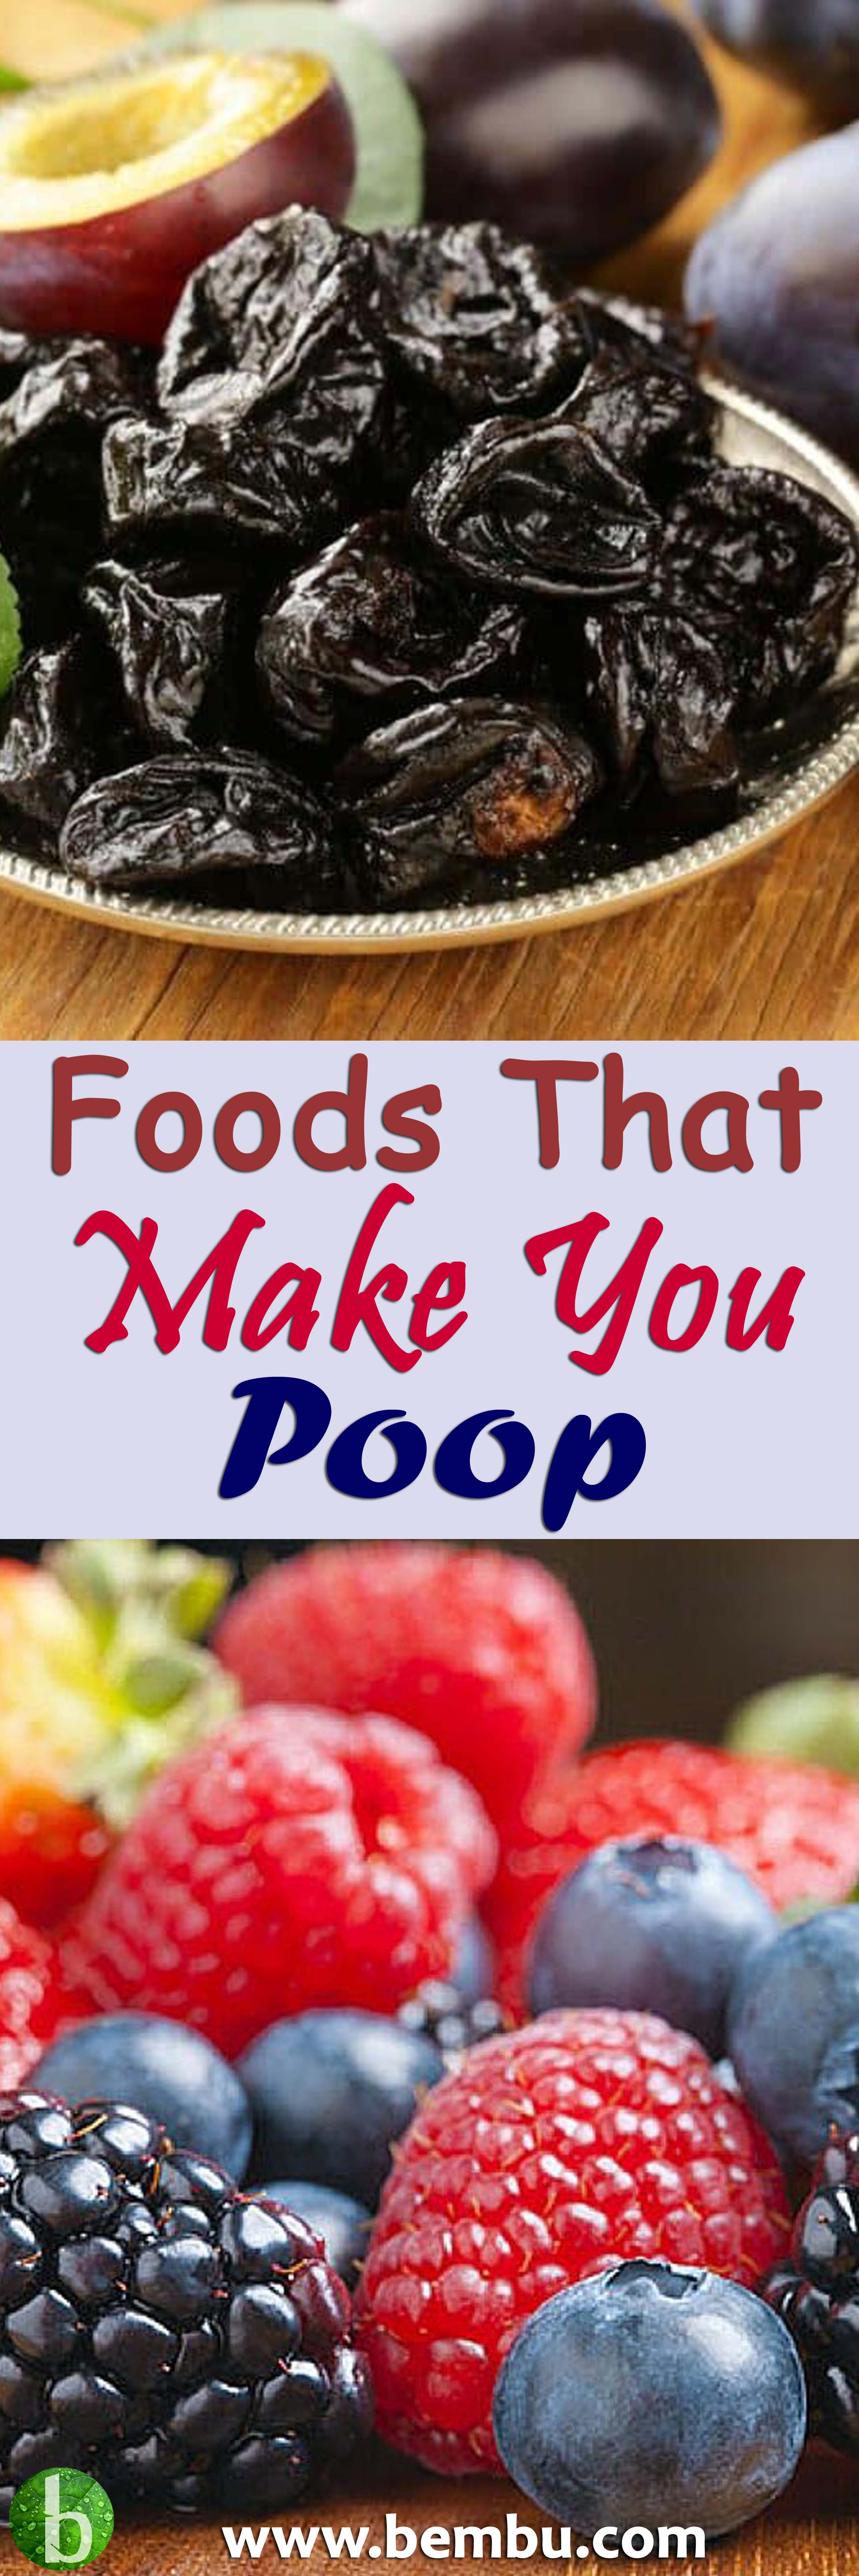 17 foods that make you poop- for constipation relief | health